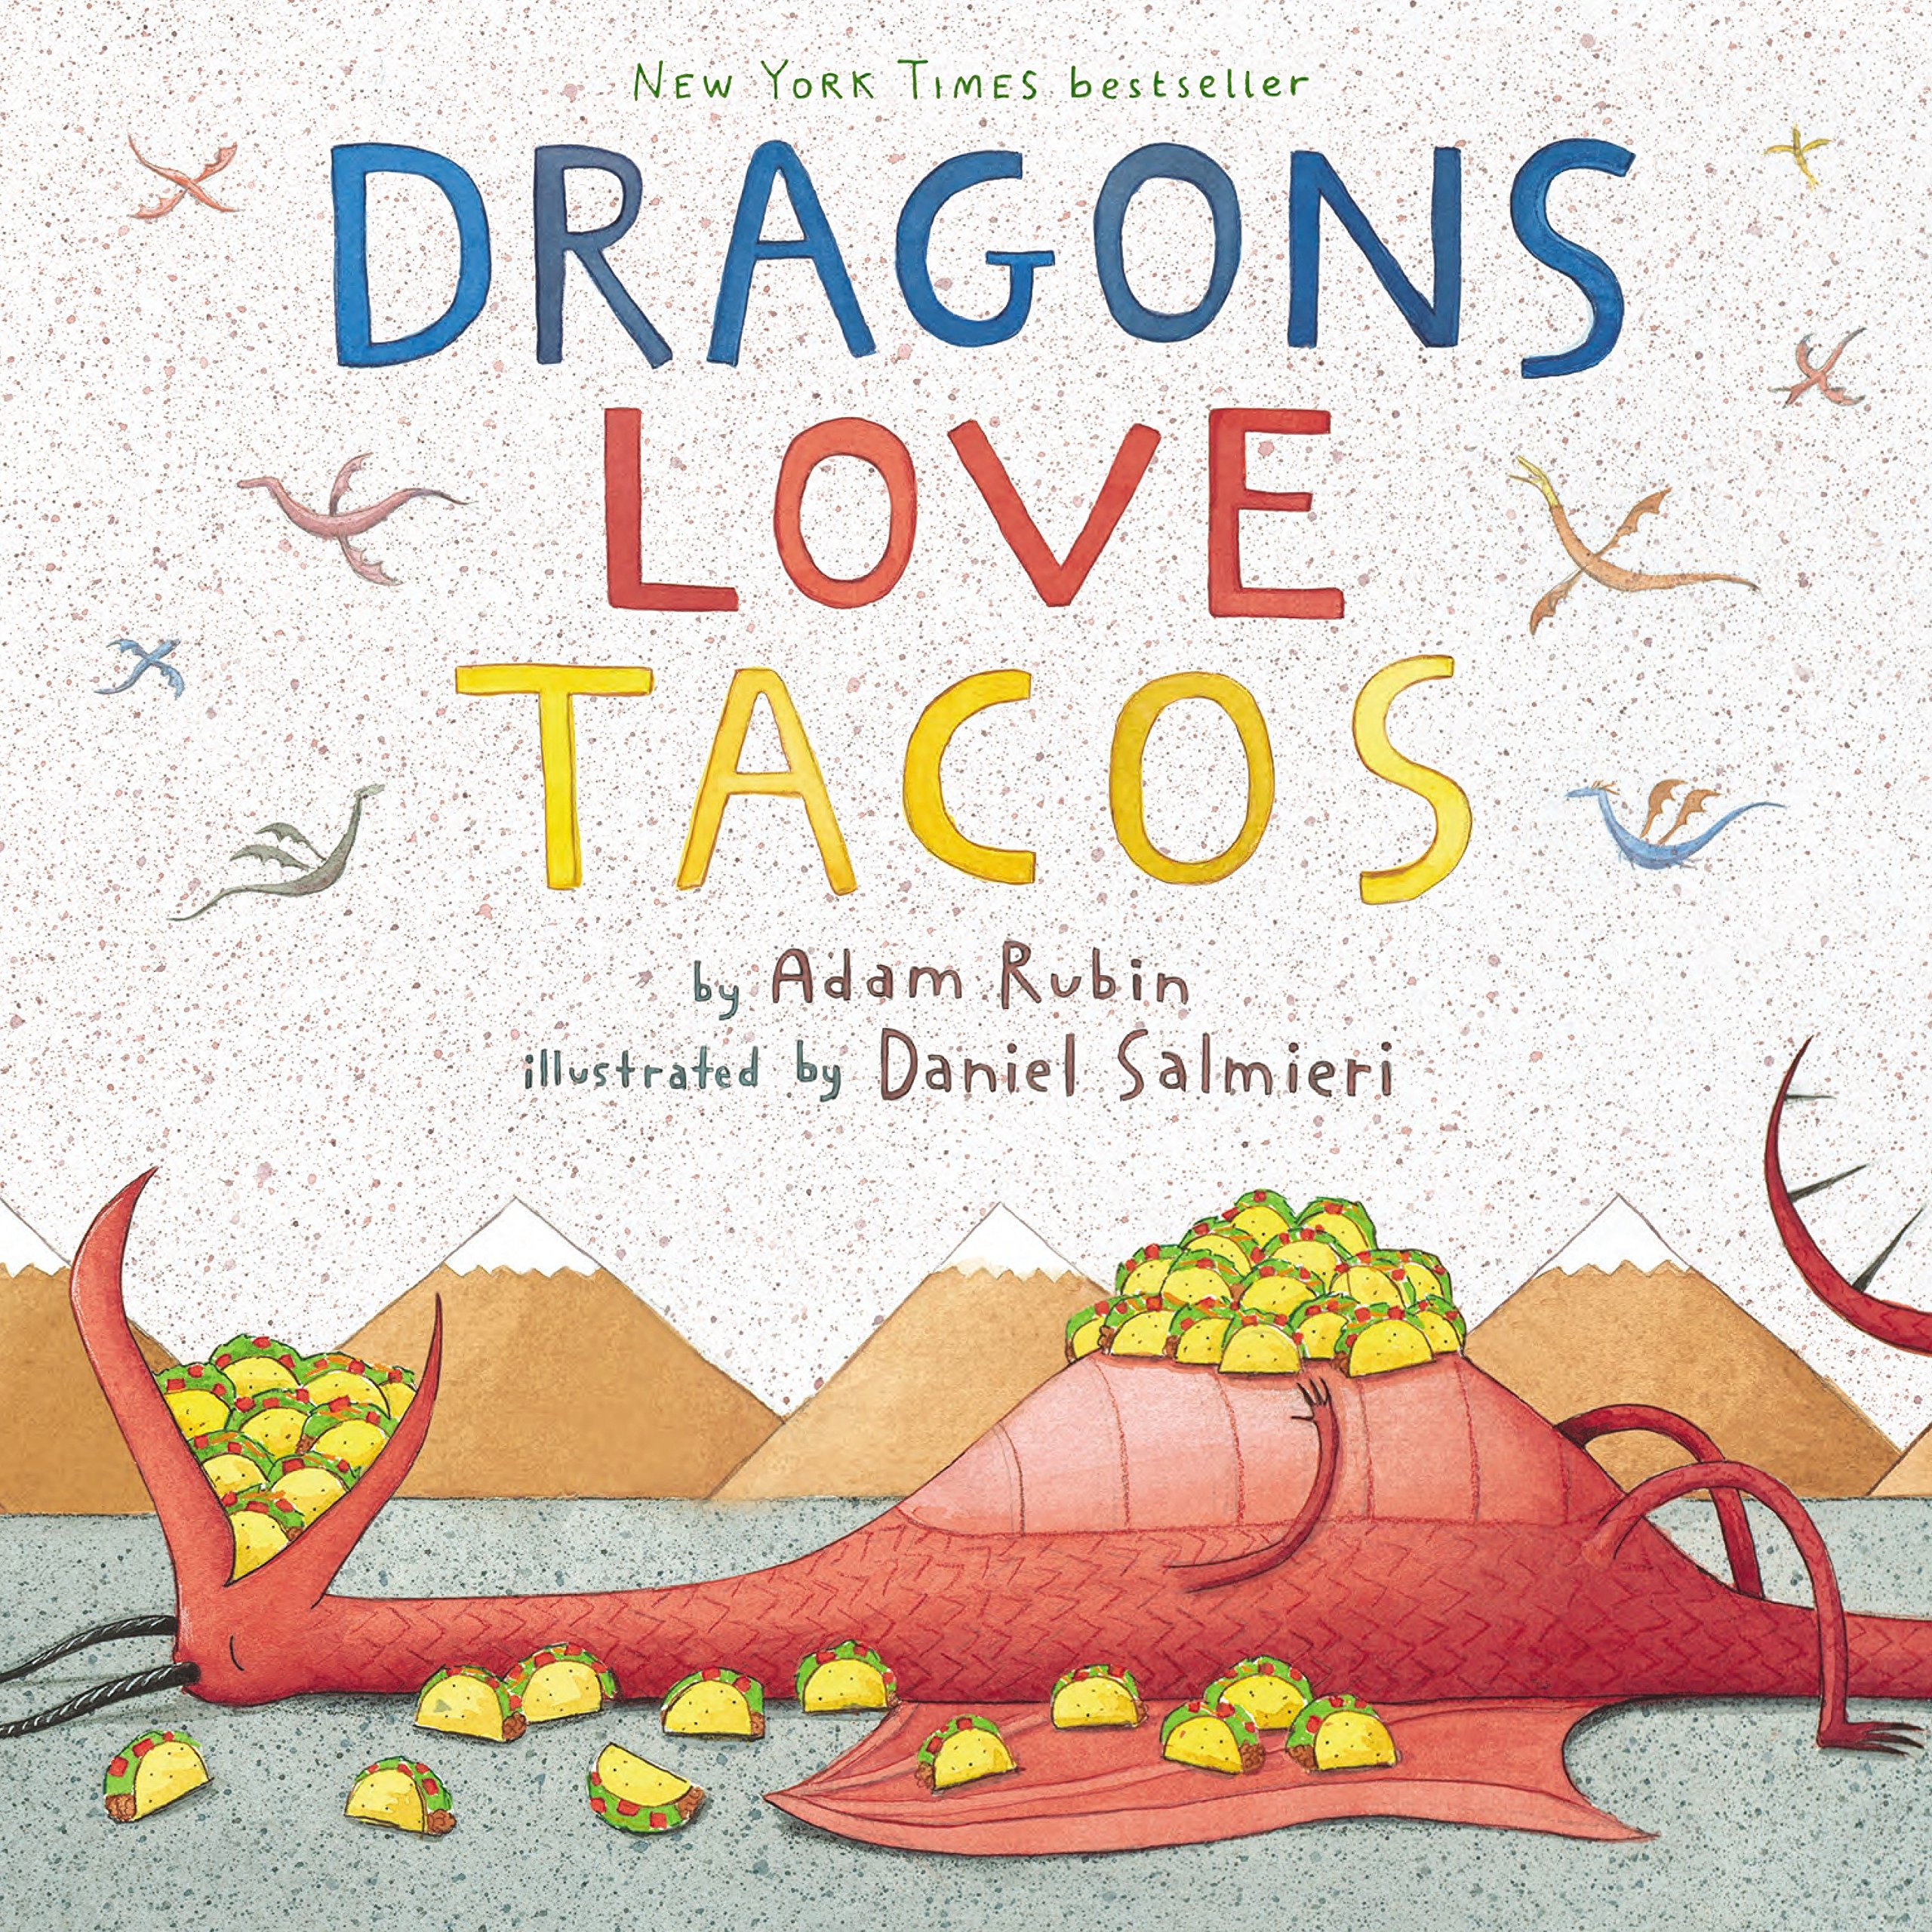 Dragons Love Tacos: Adam Rubin, Daniel Salmieri: 8601300500287: Amazon.com:  Books